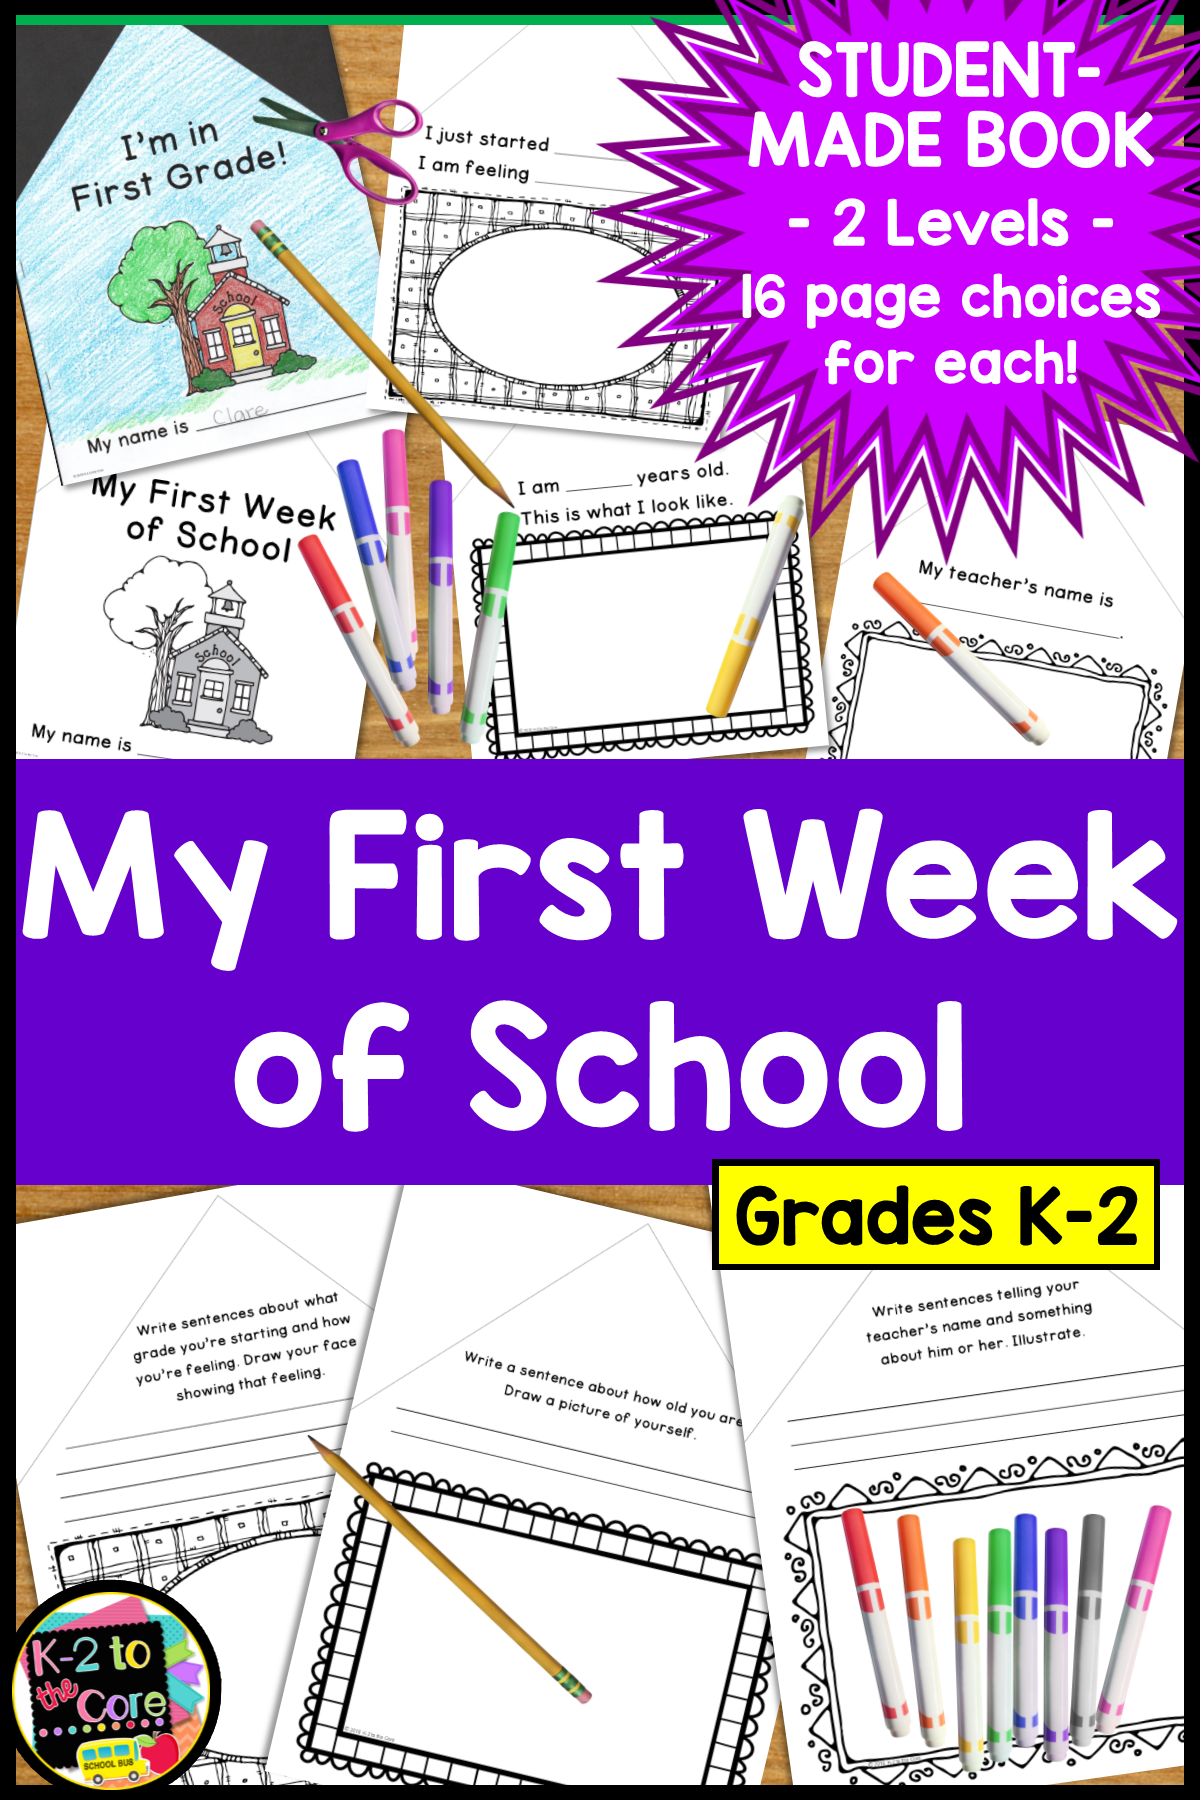 This Differentiated Writing And Illustrating Activity Is A Perfect Way To Kick Off The School Year For K 2 Each Student Creates A Book About Their First